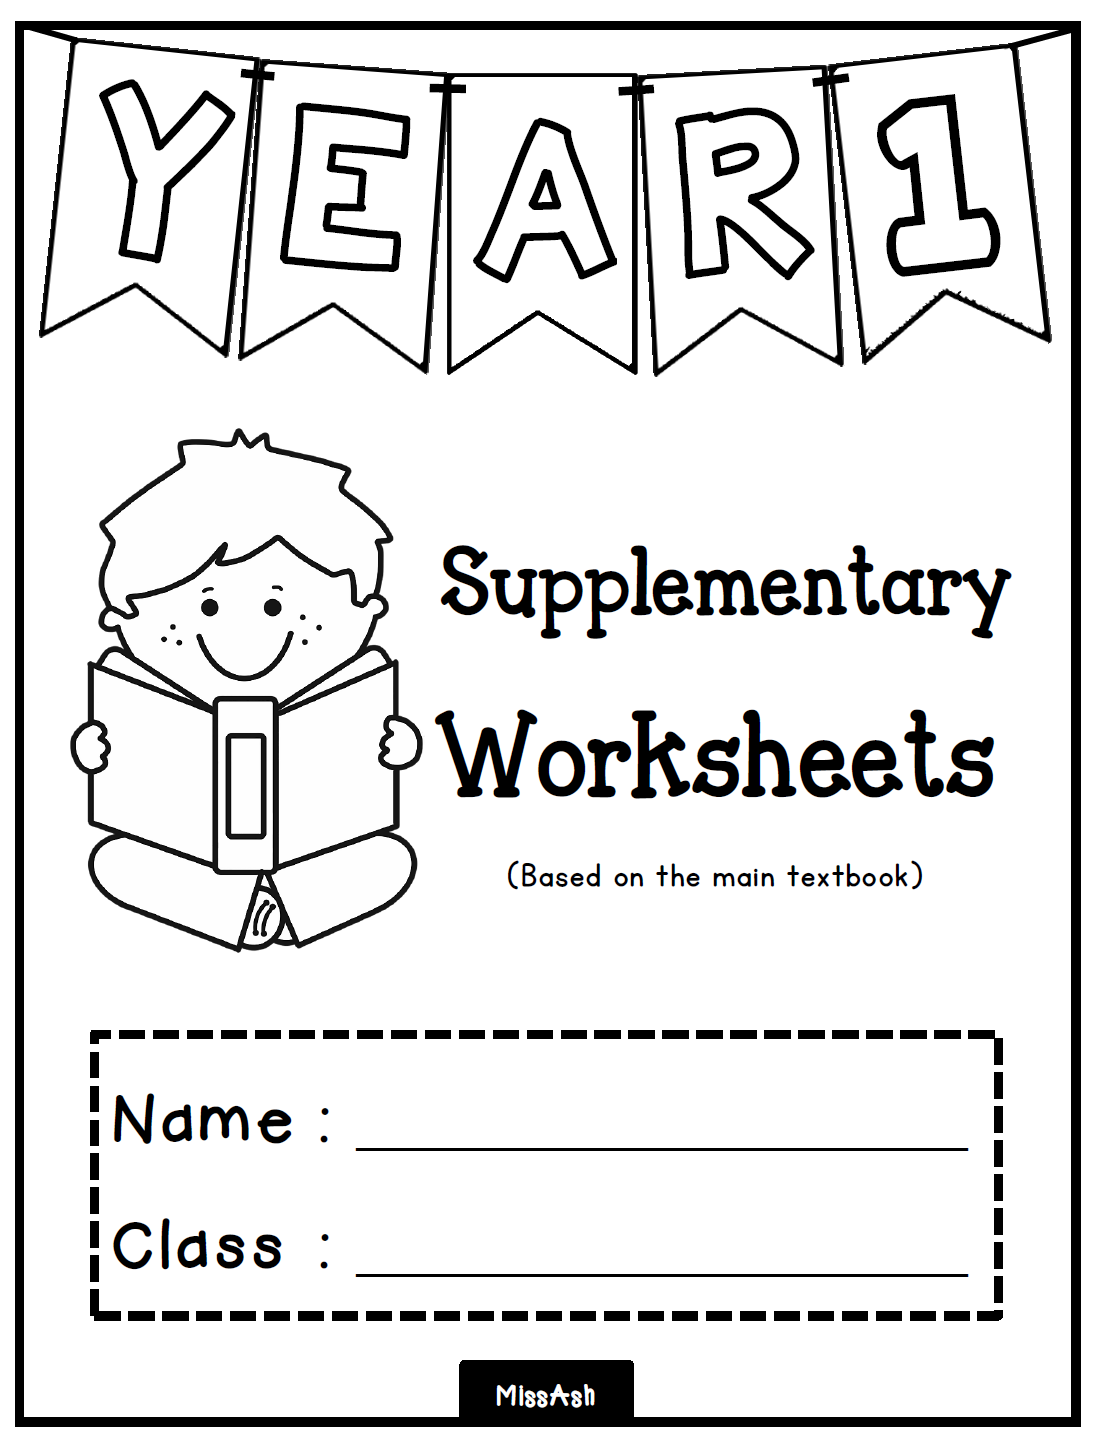 English Year 1 Cefr Worksheet